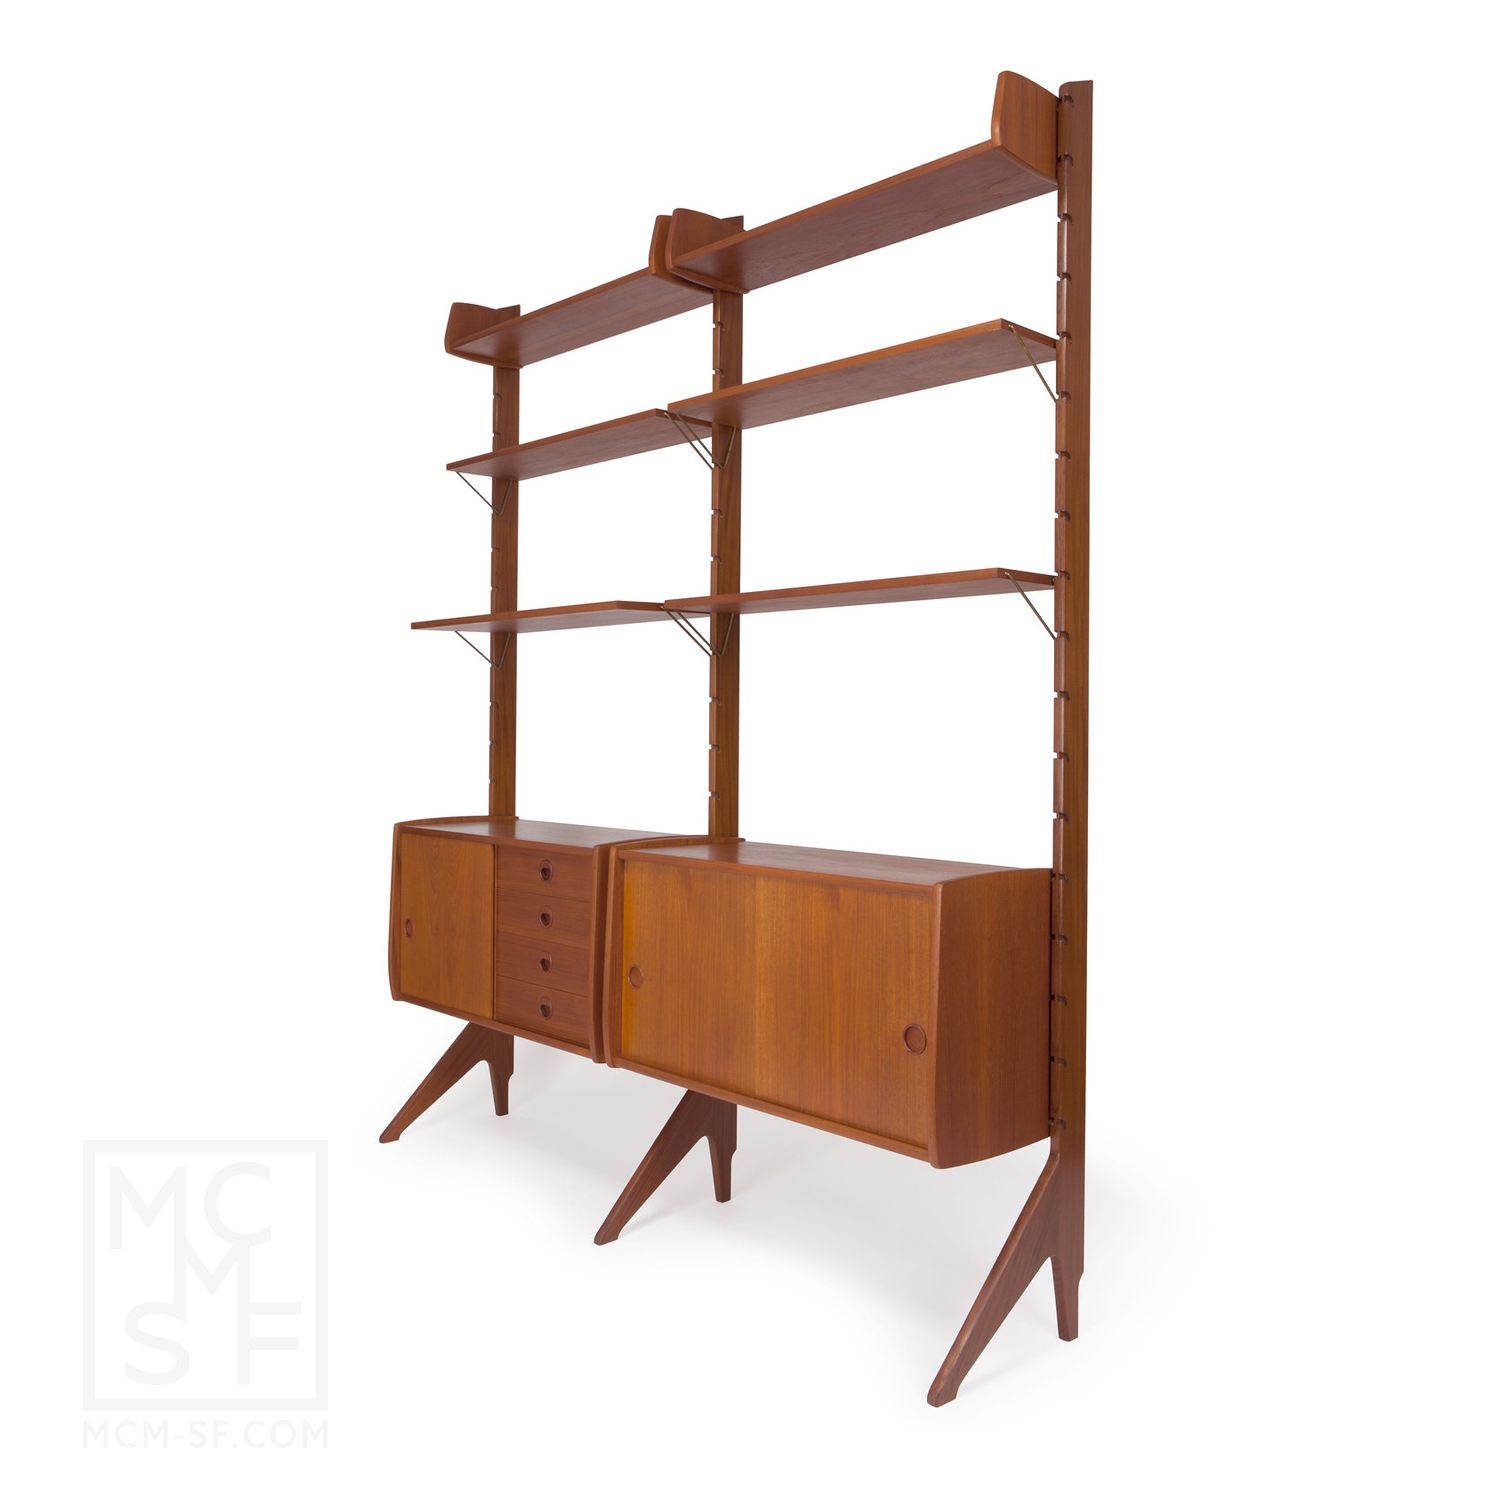 New Source For Mid Century Furniture Mcm Sf Urban Living